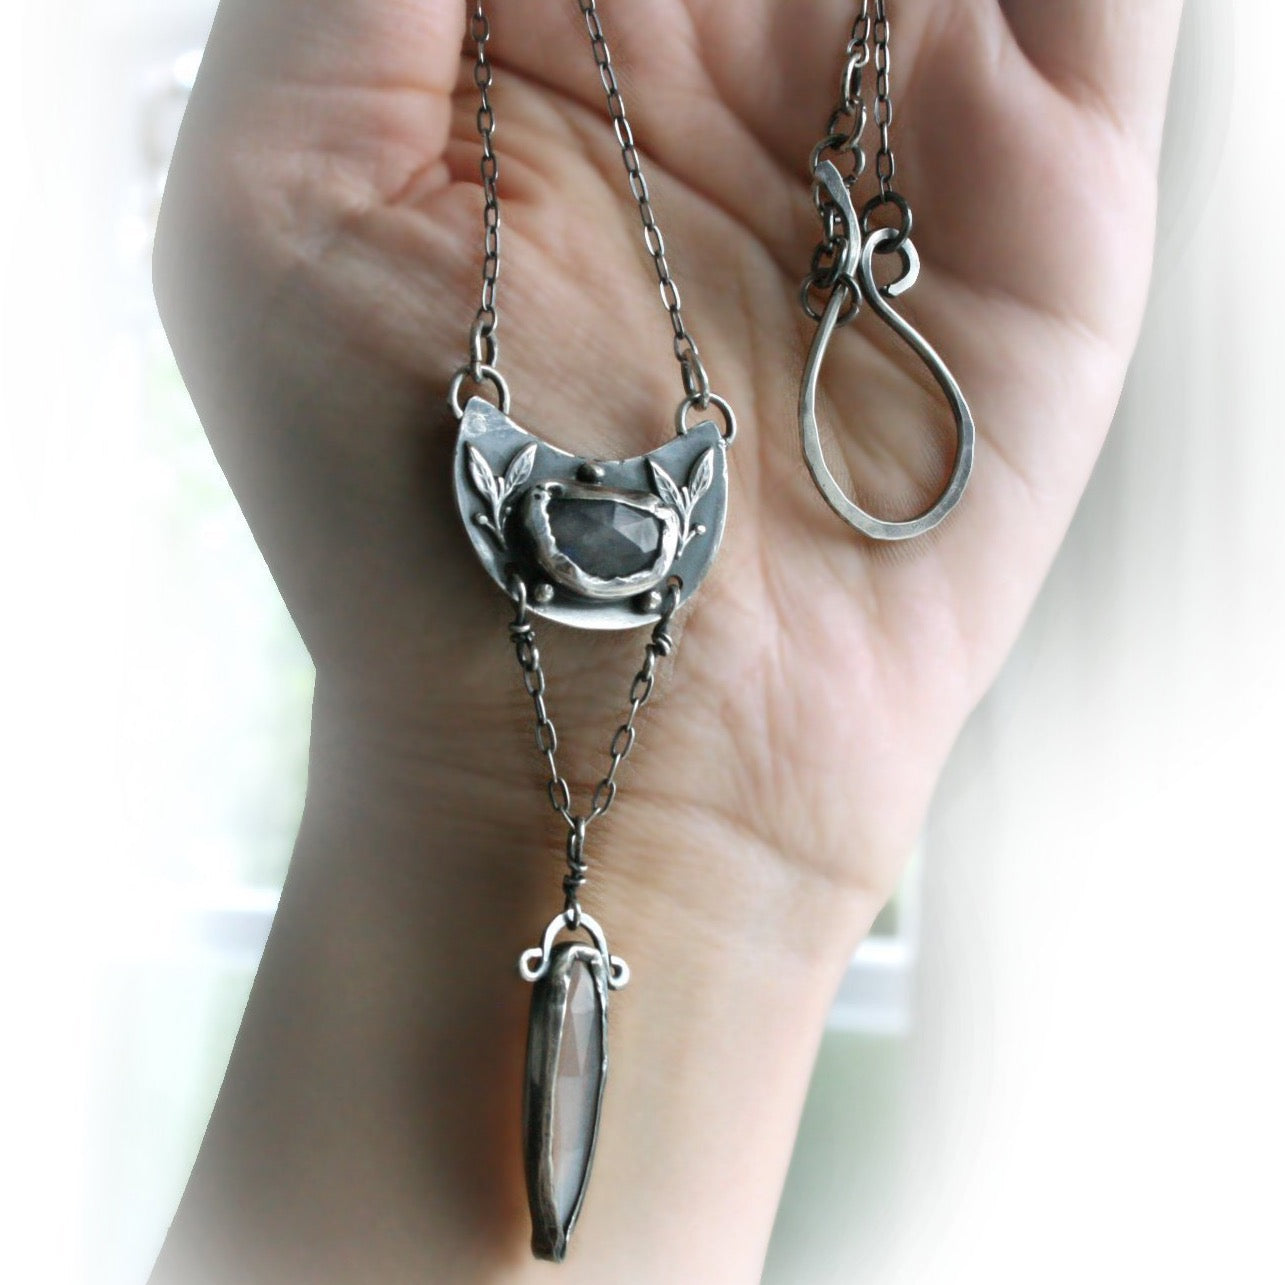 Gothic Lariat Necklace with Moonstone - Andune Jewellery